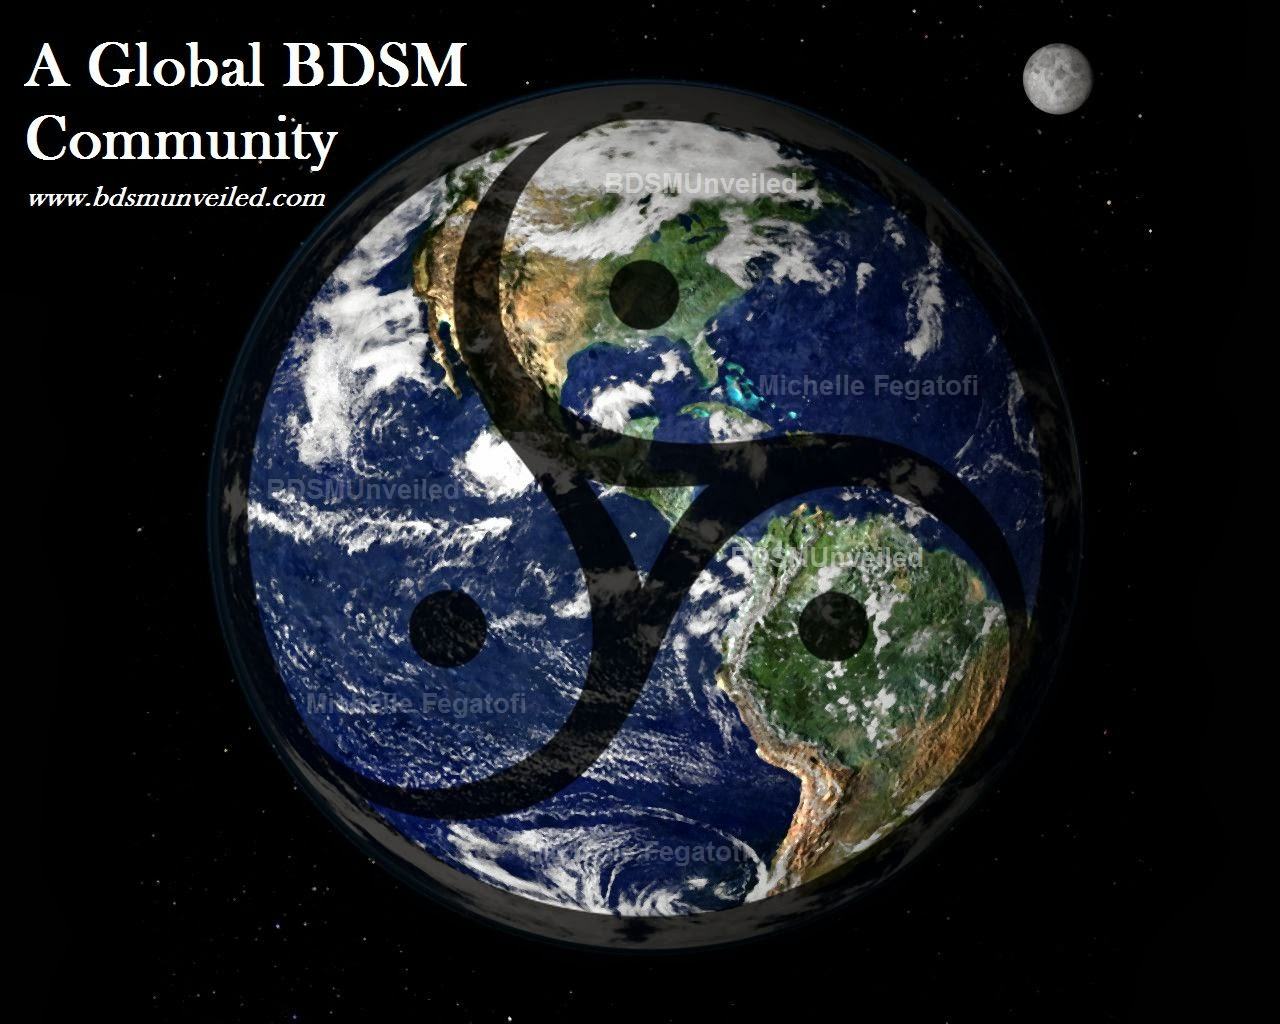 A Global BDSM Community